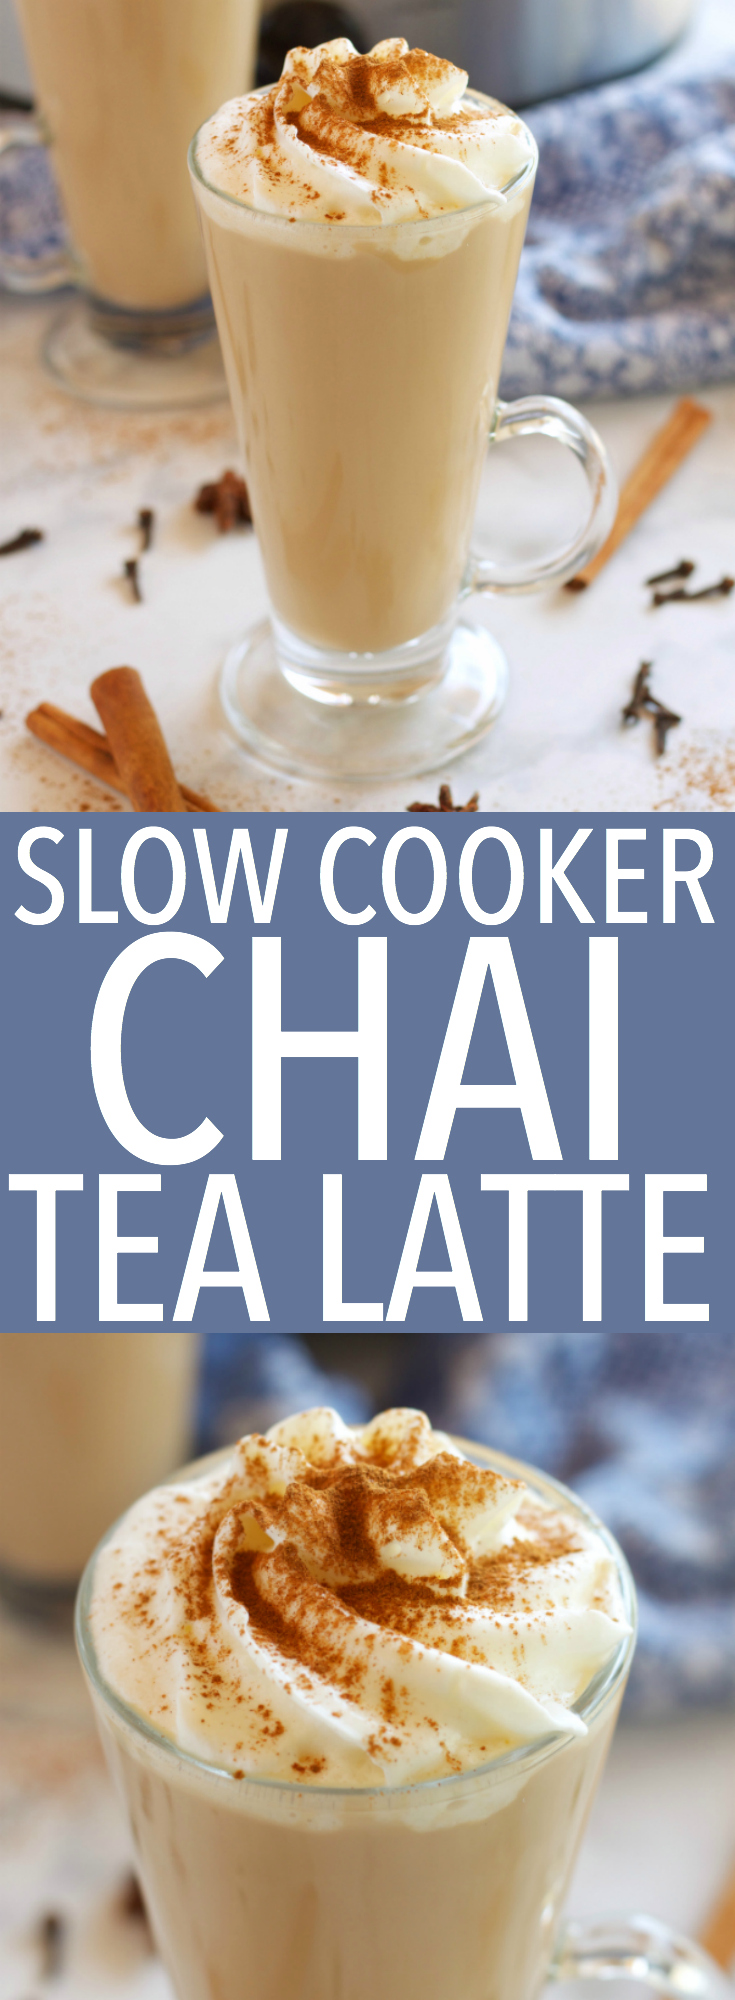 This Slow Cooker Chai Tea Latte is the perfect healthier warm drink for the holidays, and it's so easy to make with only a few simple ingredients! Recipe from thebusybaker.ca! #chailatte #homemadechailatte #slowcookerlatte #crockpotlatte via @busybakerblog